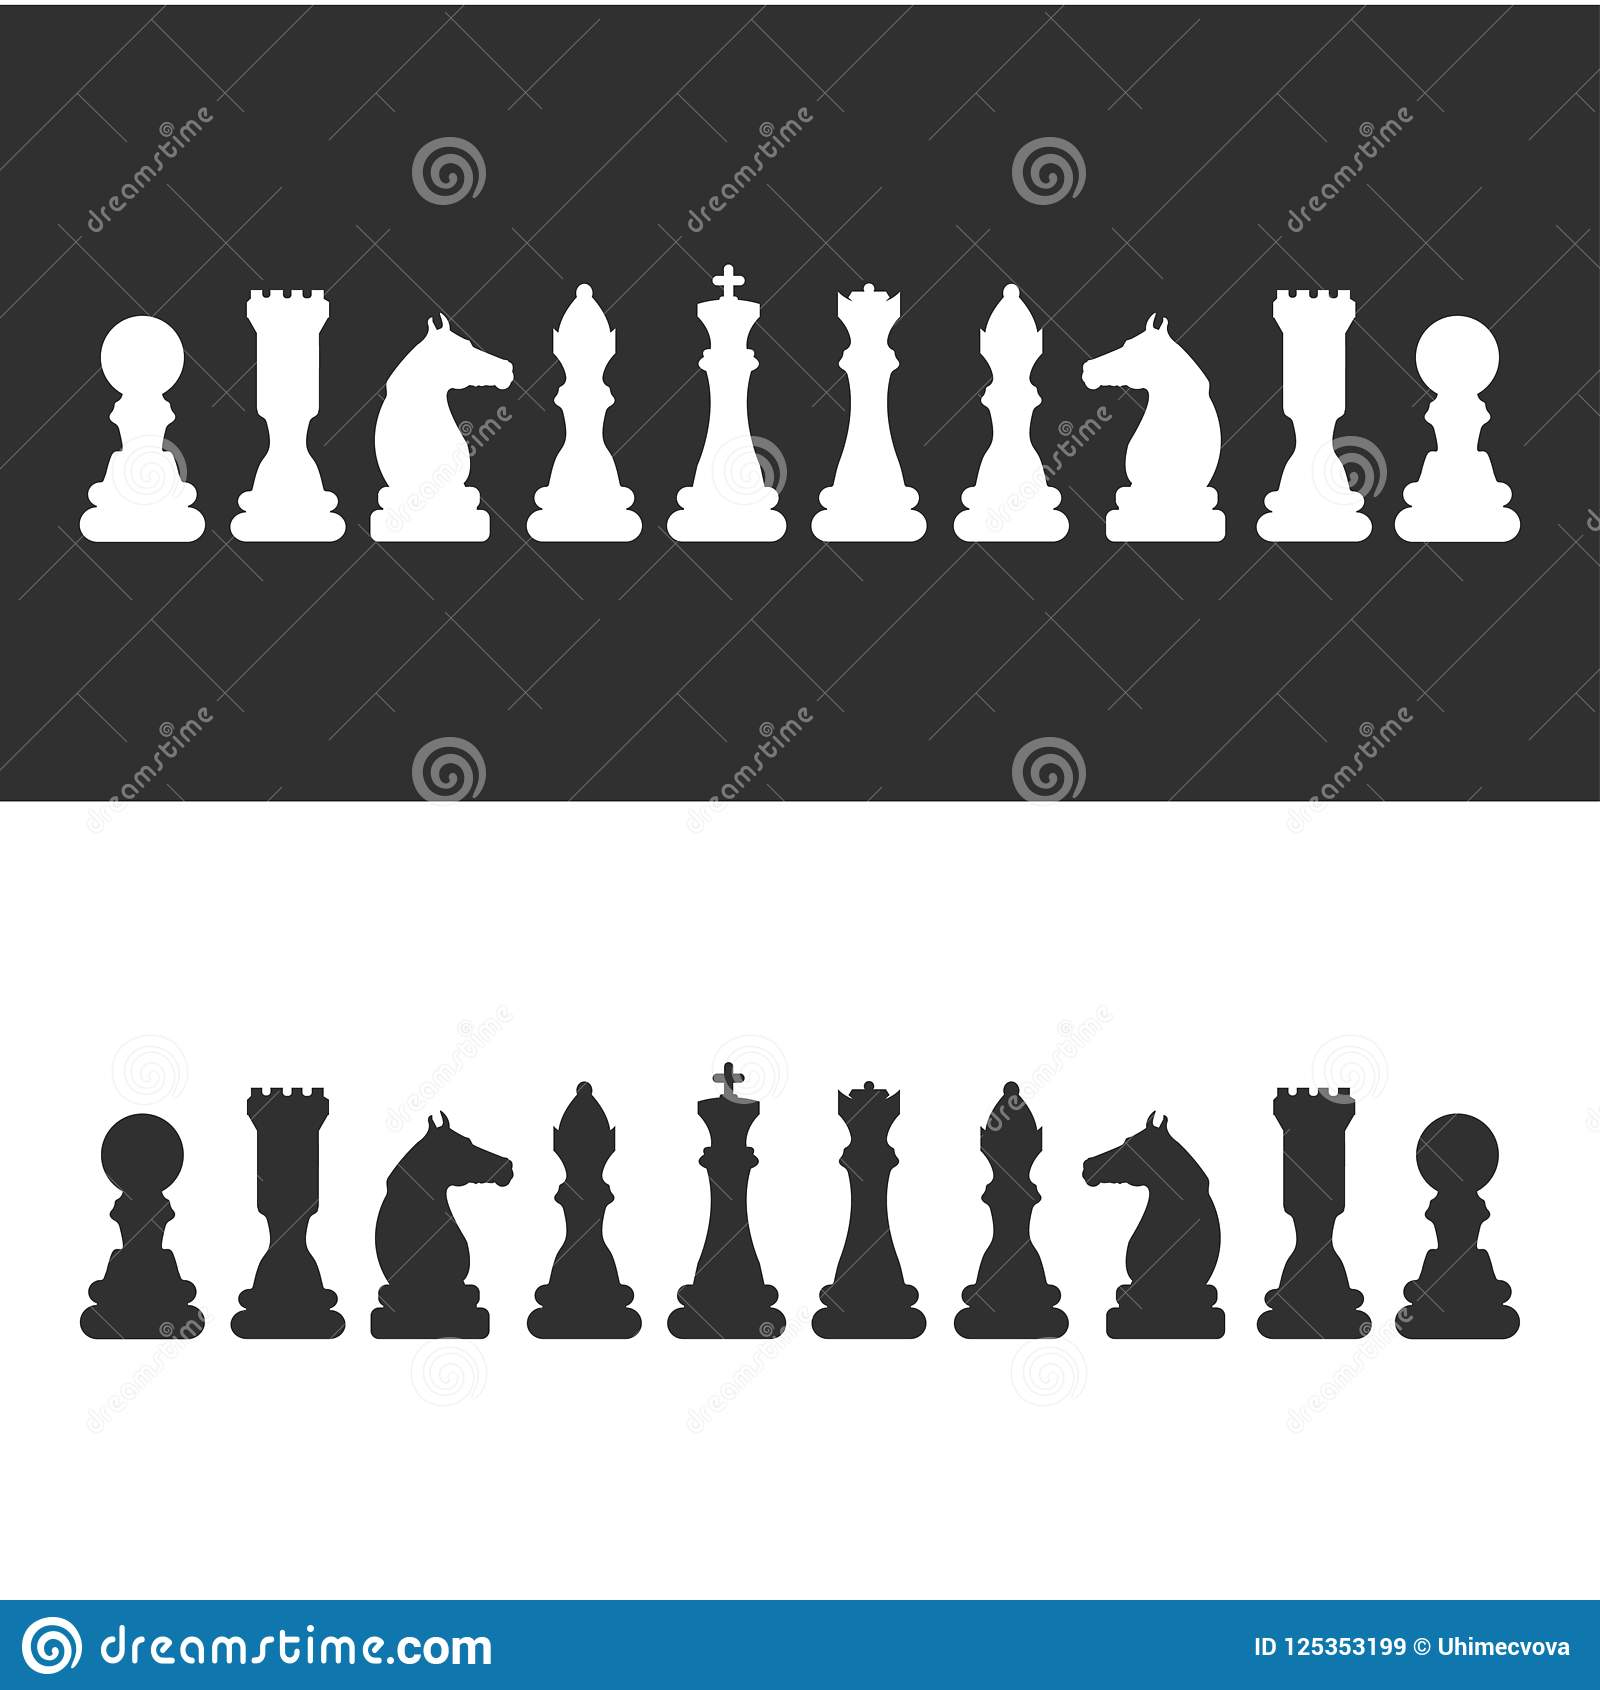 Chess pieces set of chess pieces. No meshes used.